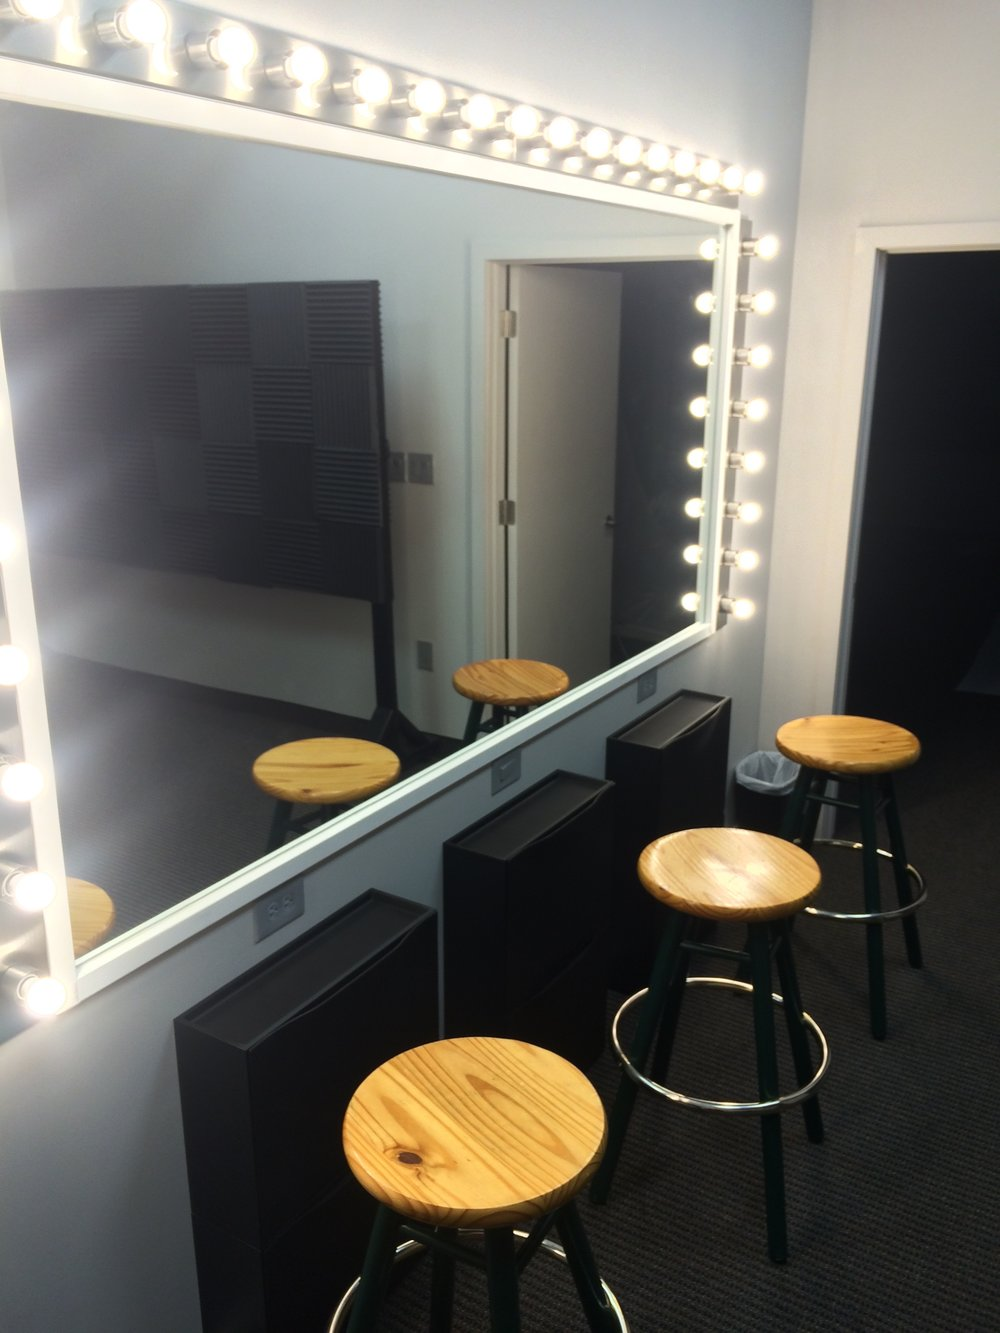 Large dazzling mirror--the lights stay cool!